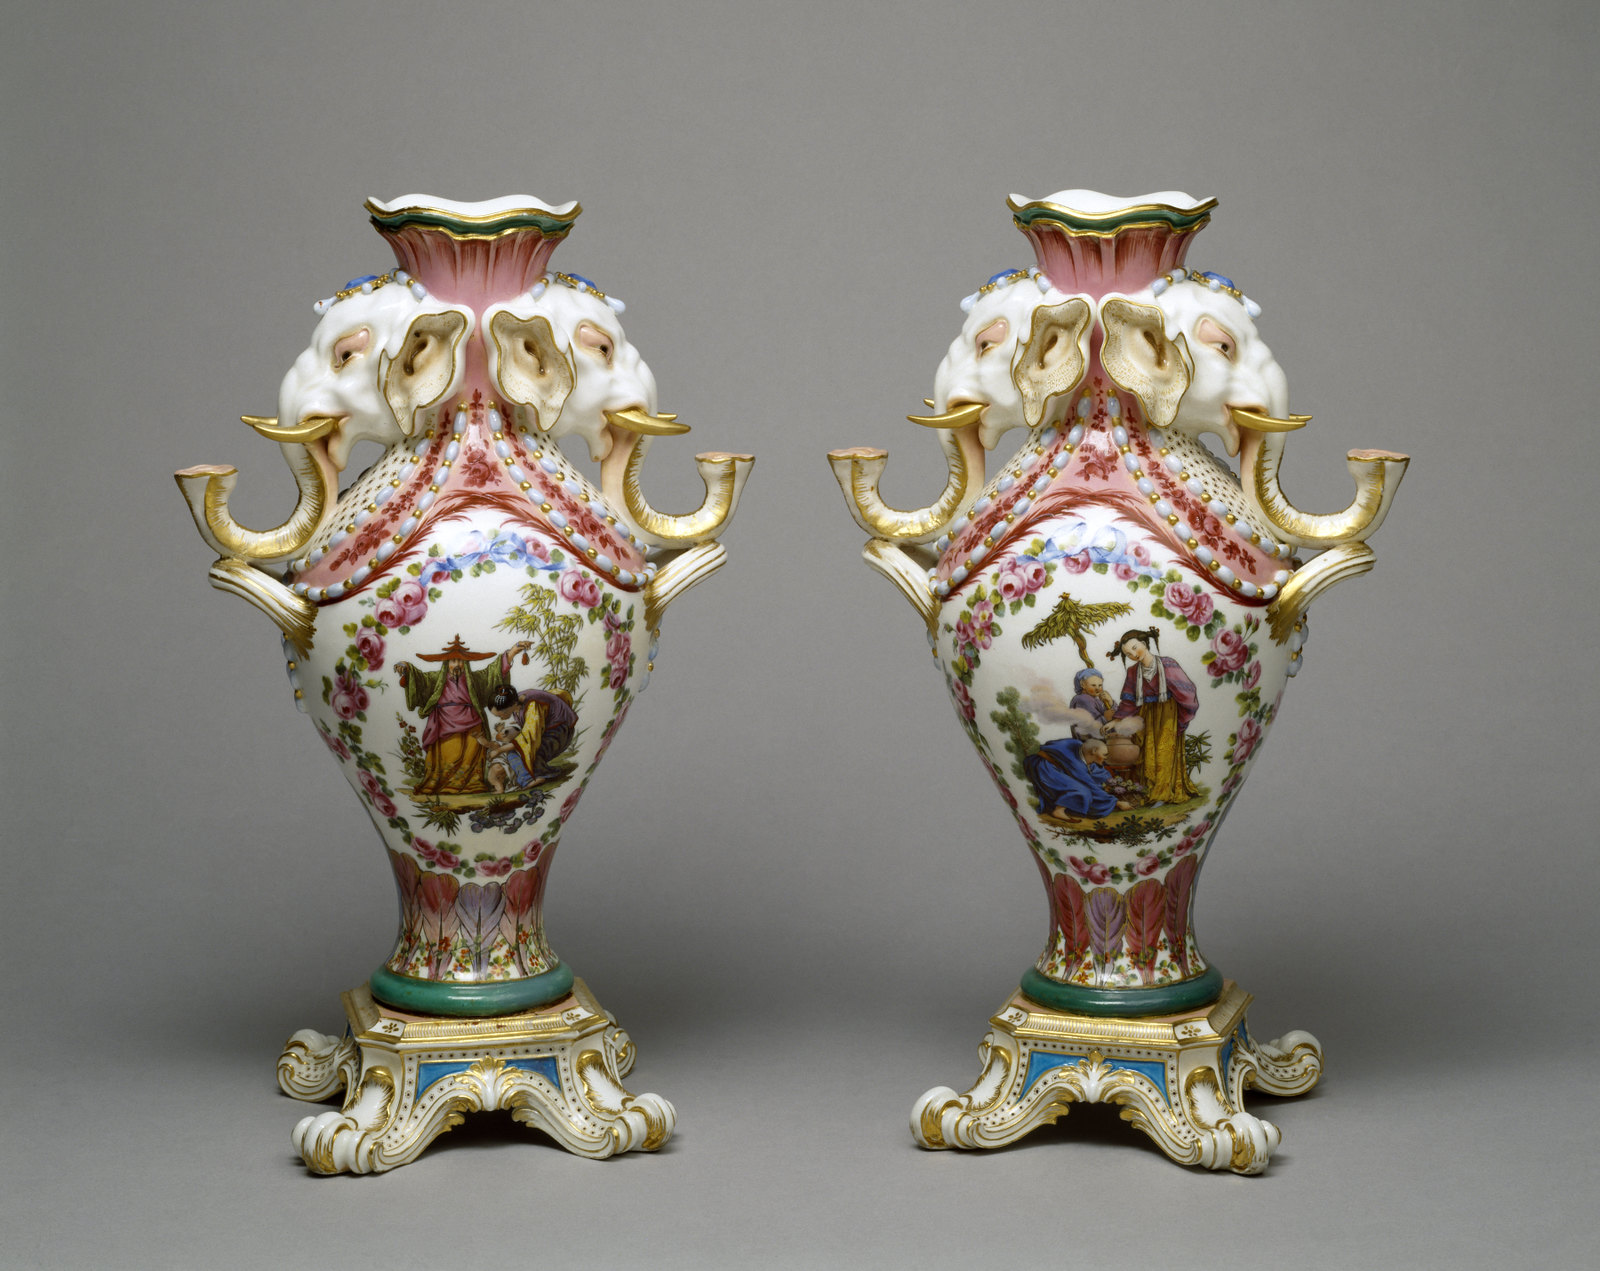 Pair of Vases. Charles Nicolas Dodin, Sèvres, France, 1760. Walters Art Museum